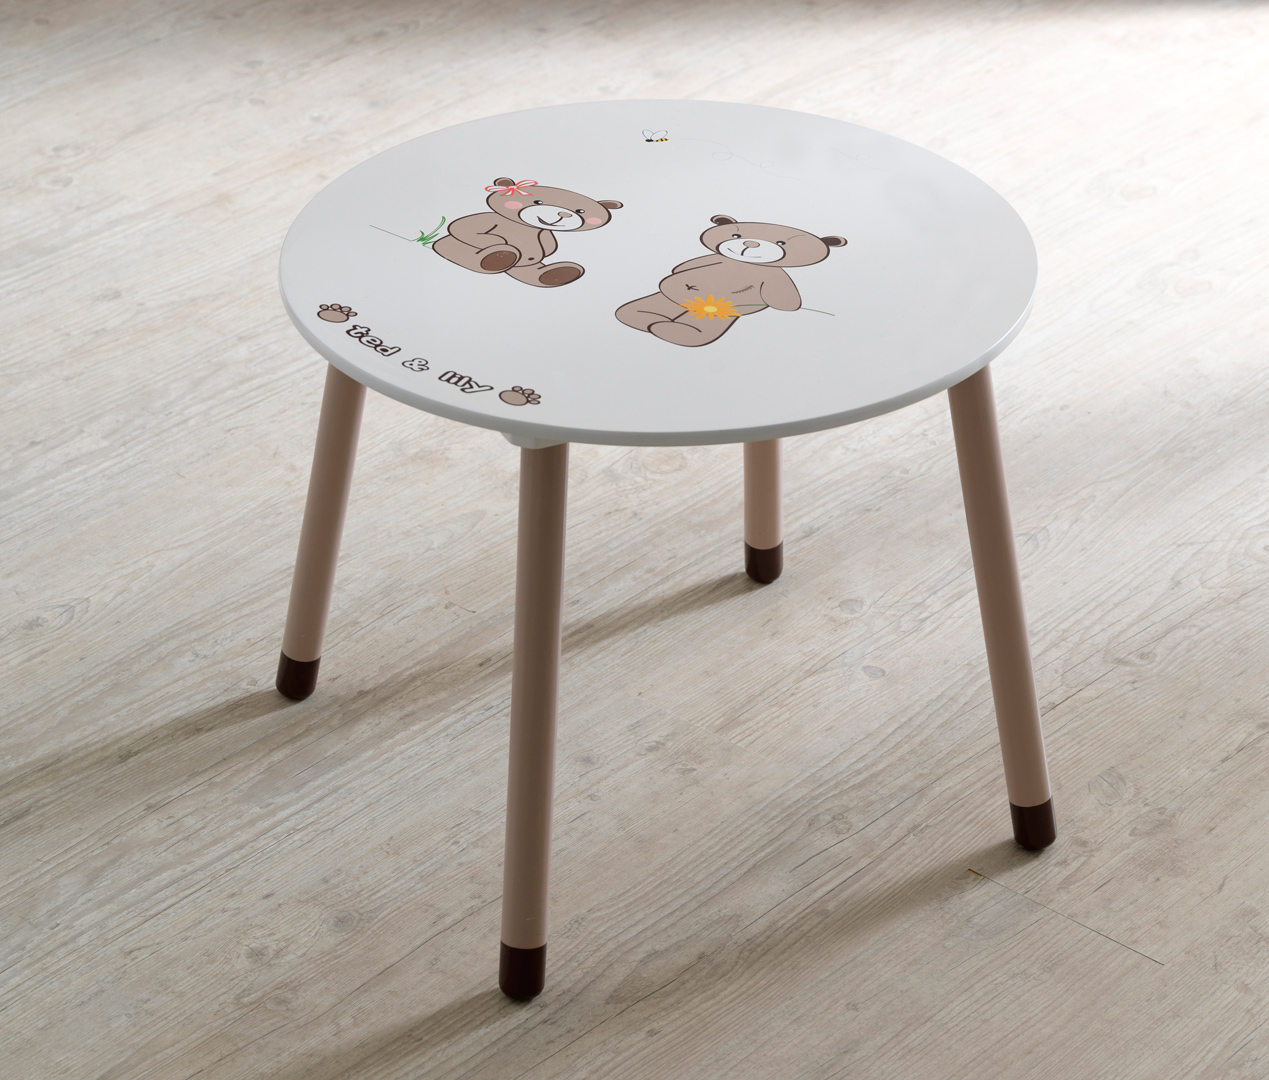 Table de jeu enfant contemporaine chocolat/beige Lilly